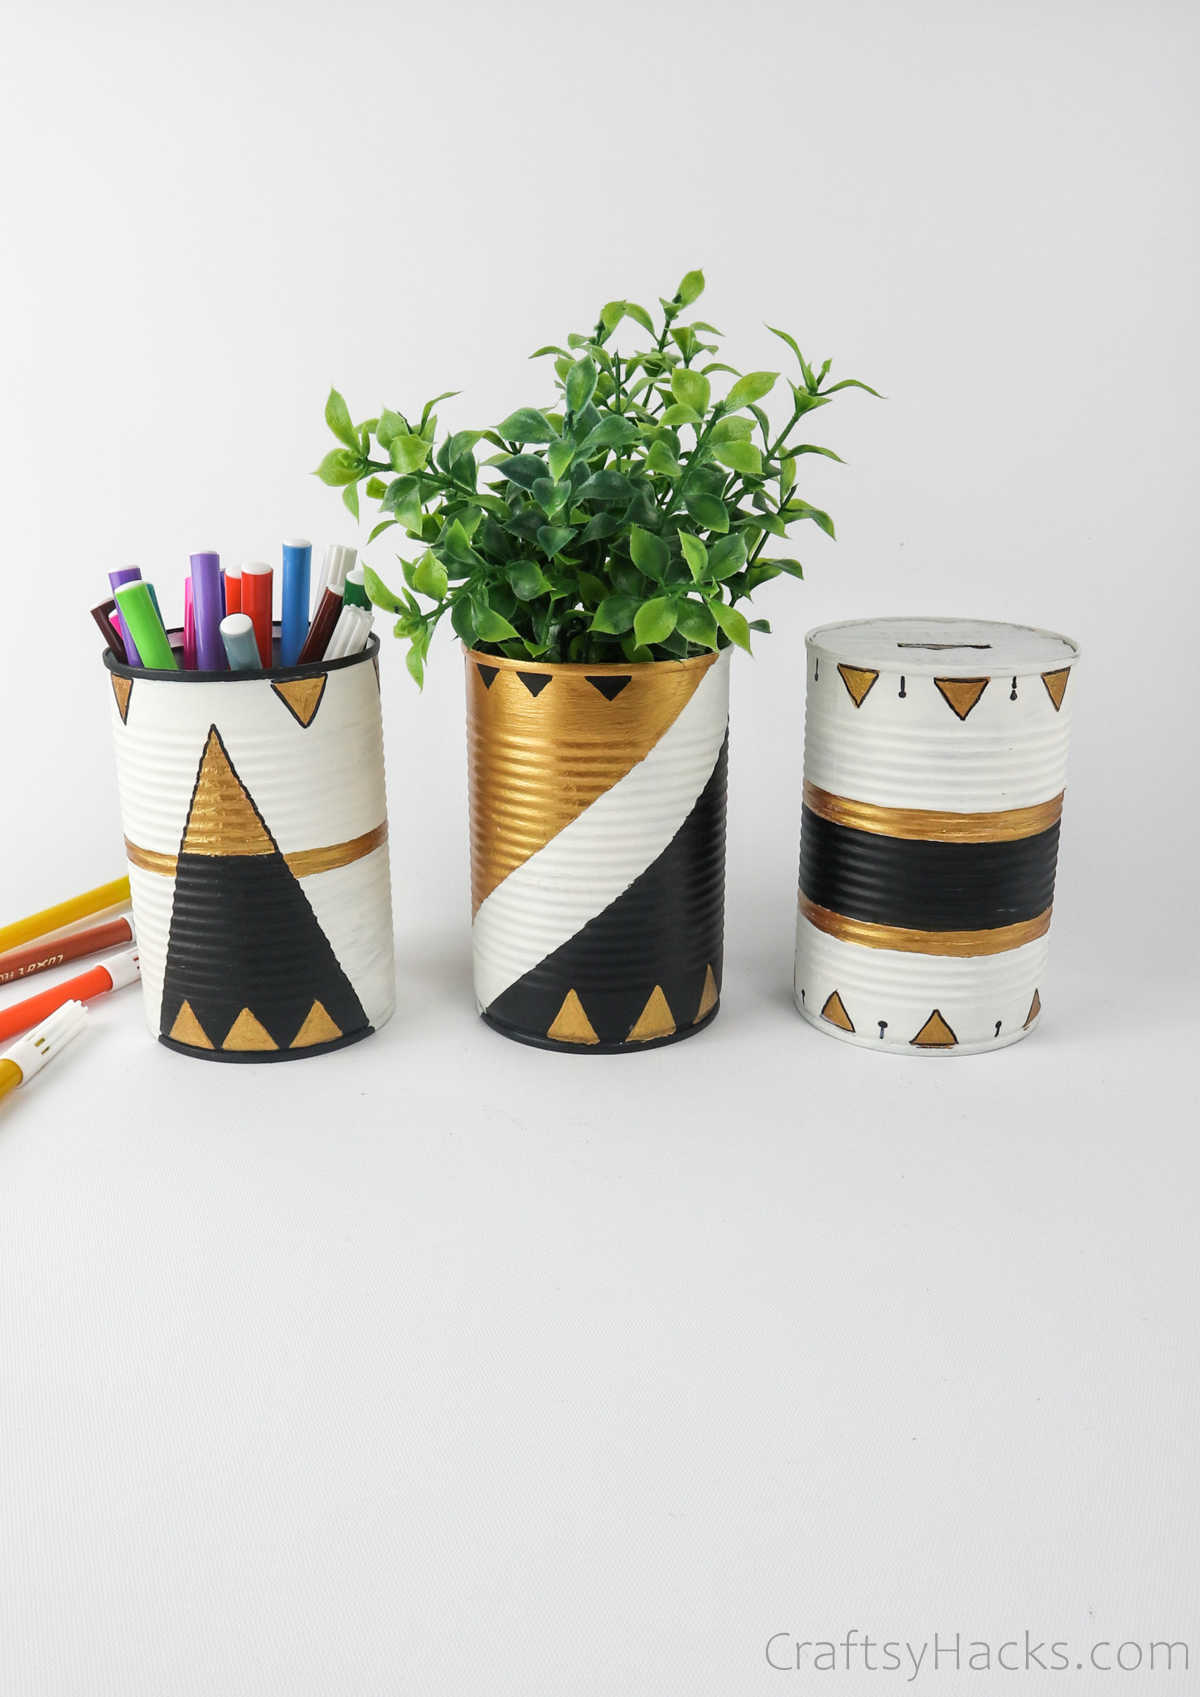 tin cans with pens, and plant